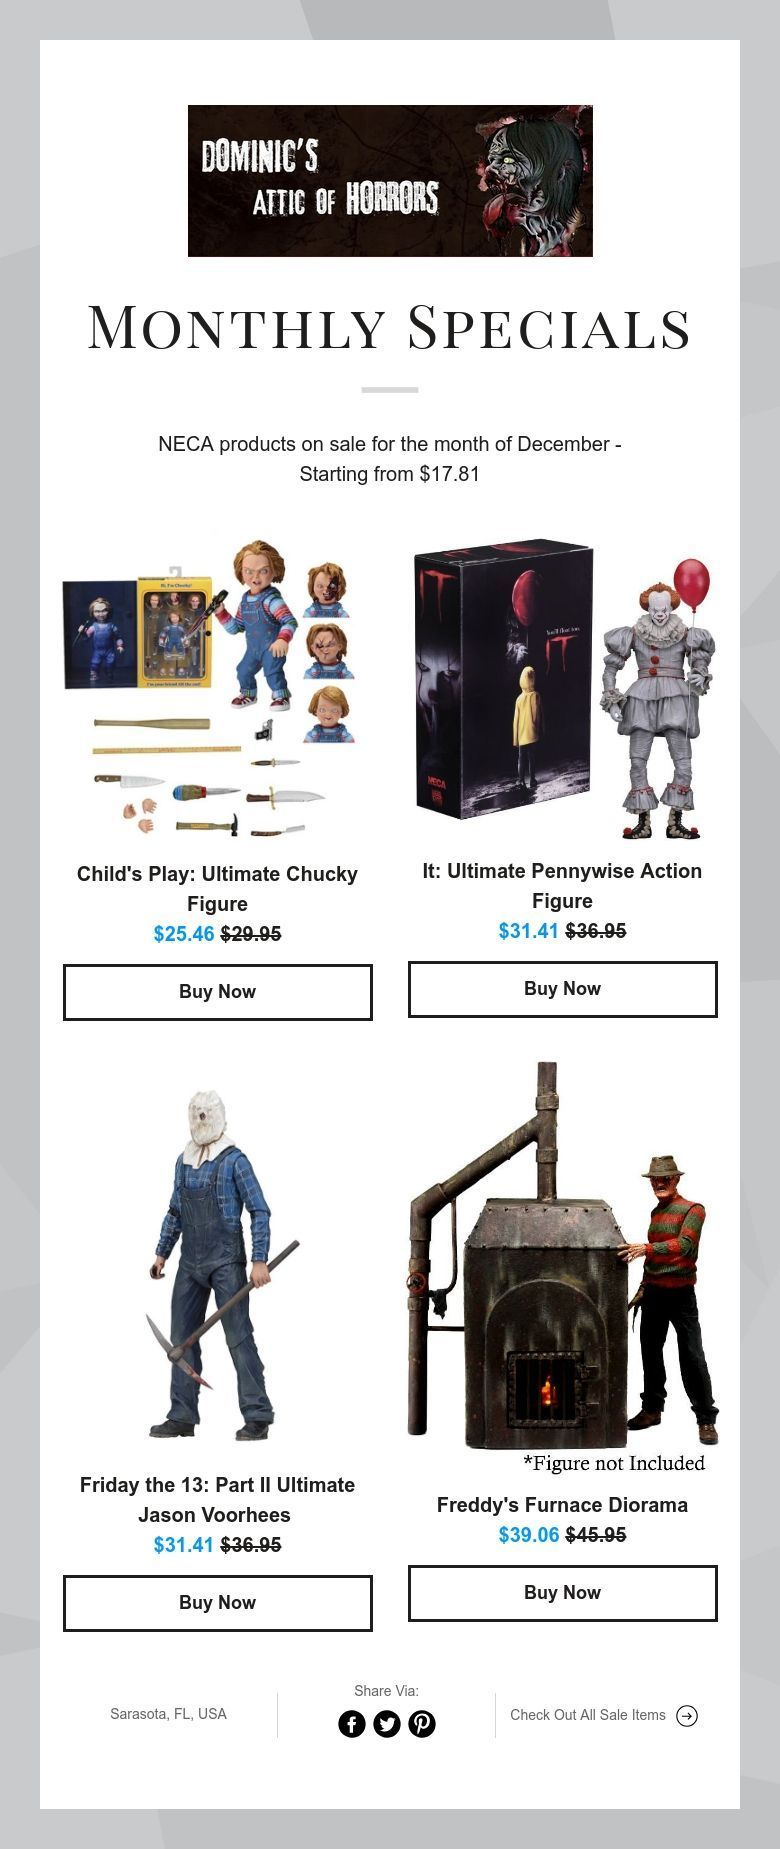 Monthly Specials With Images Monster Vampire Kids Playing Neca